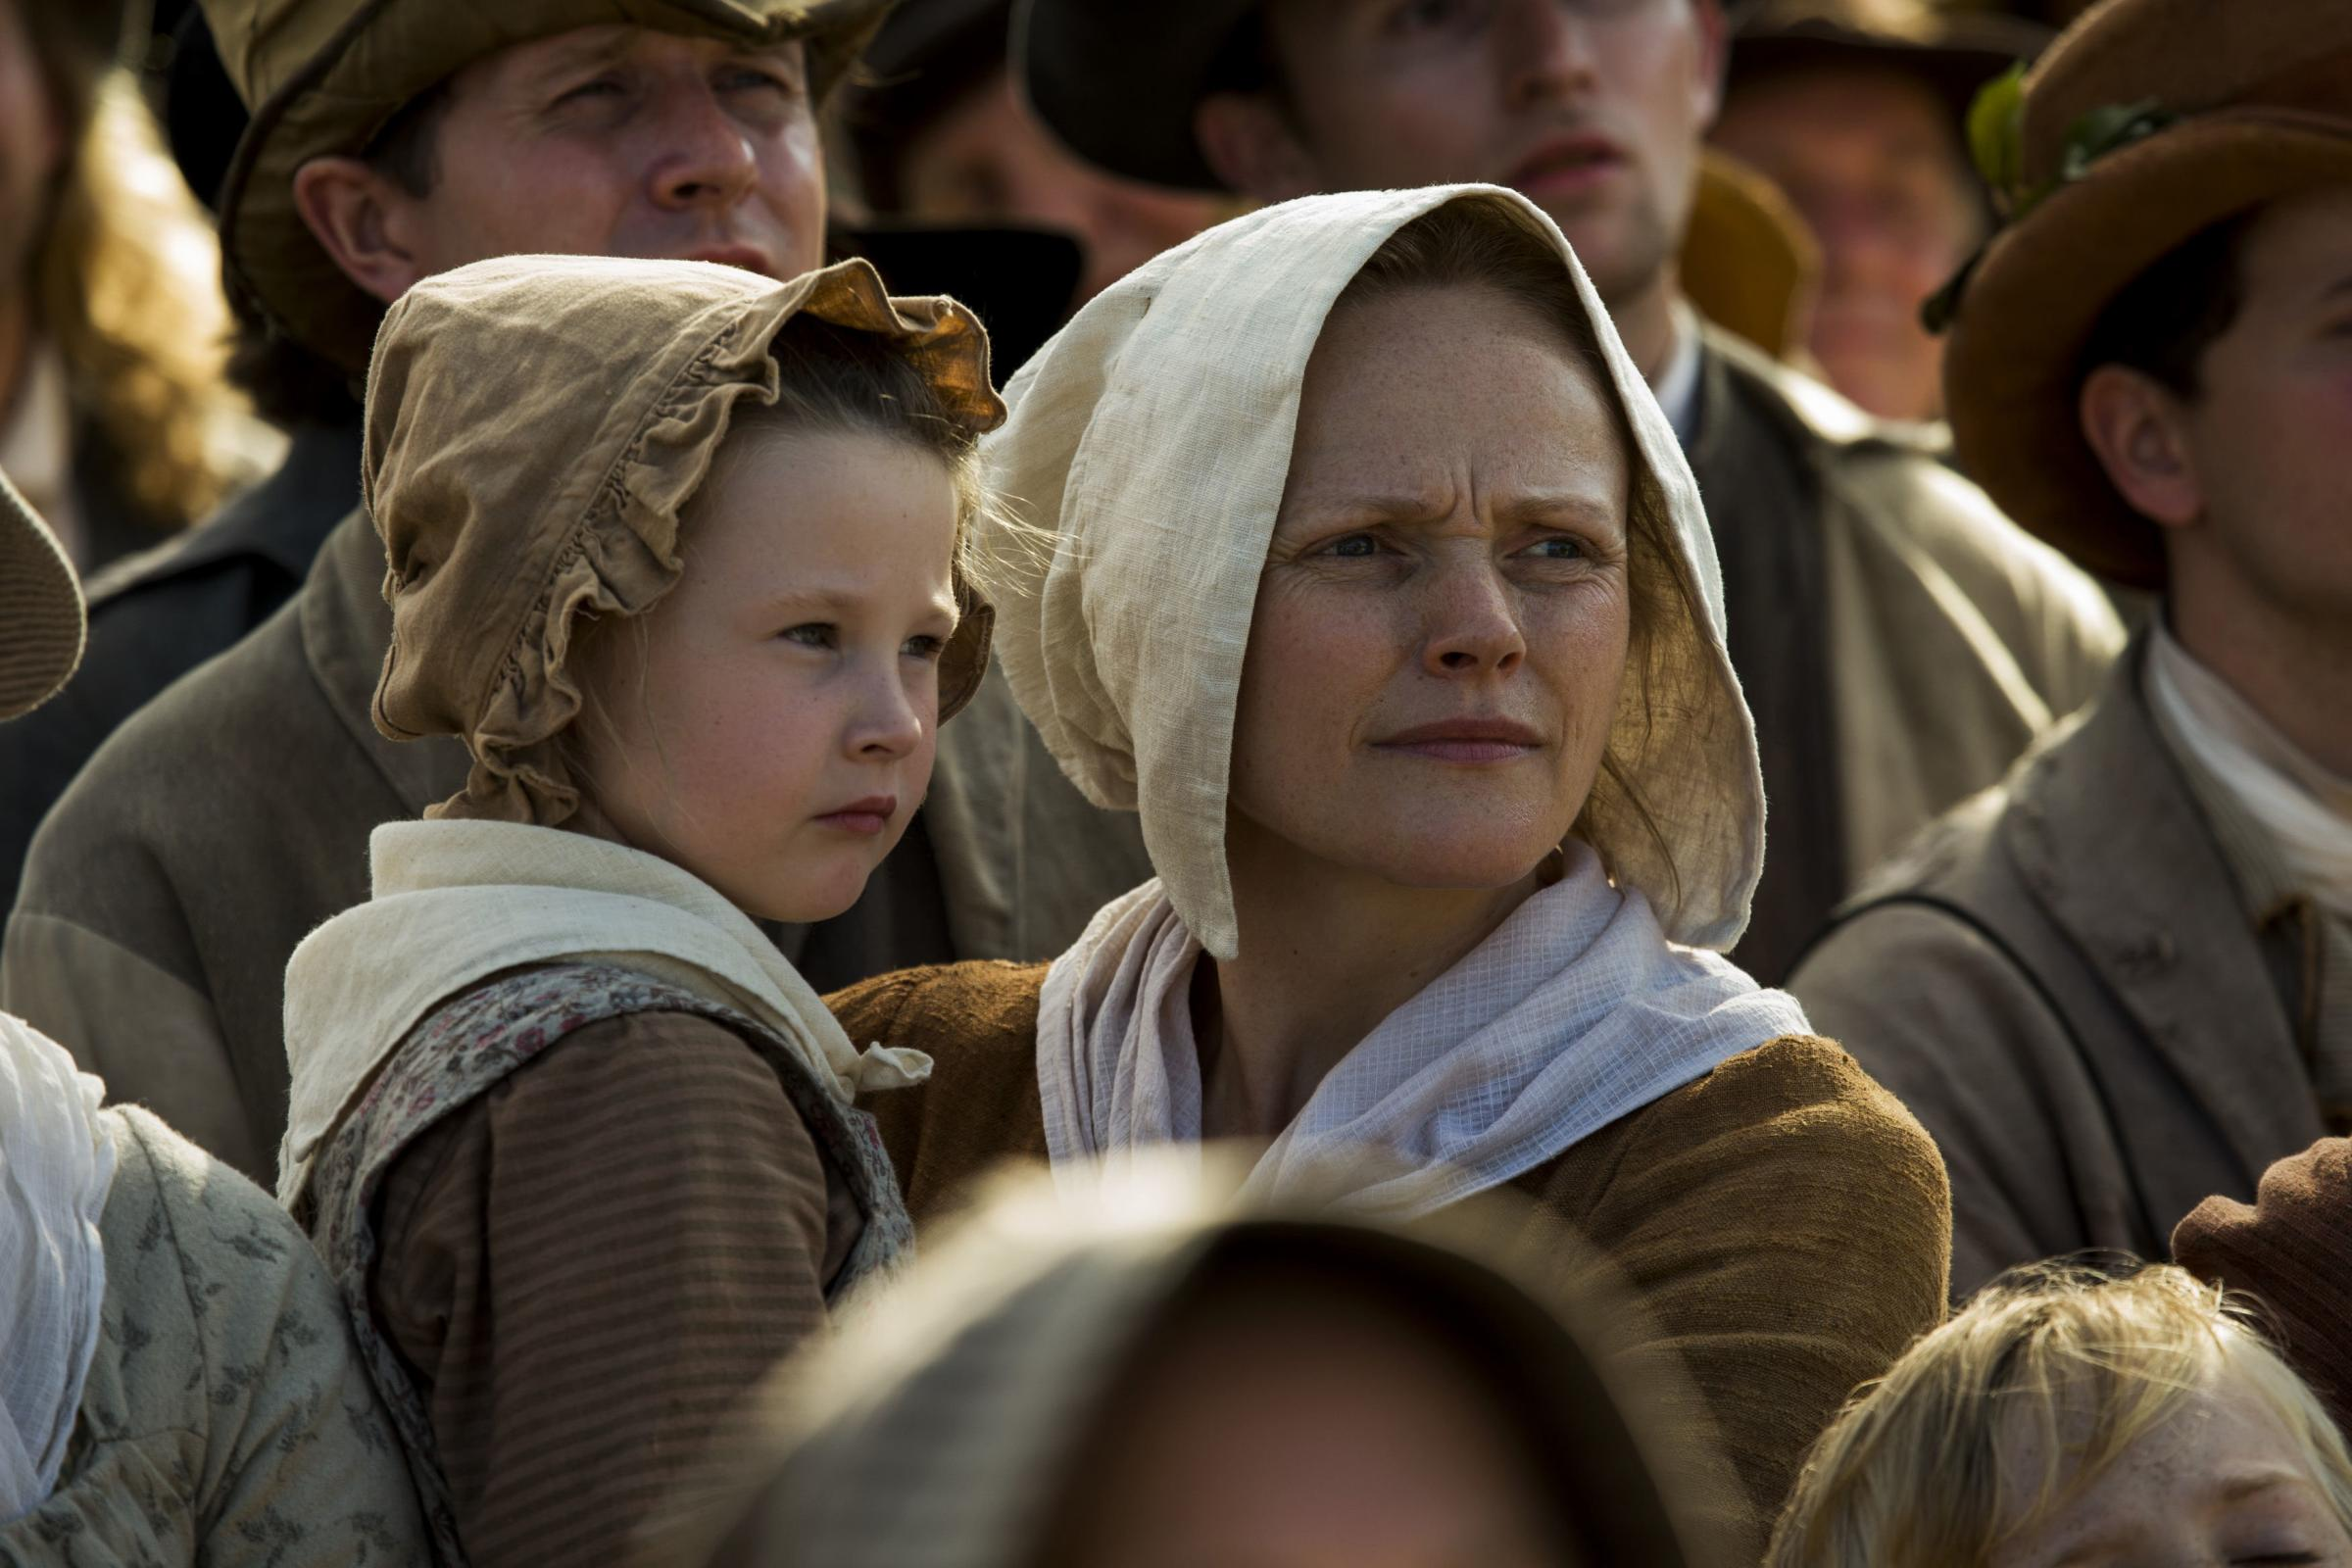 Undated film still handout from Peterloo. Pictured: Maxine Peake as Nellie. See PA Feature SHOWBIZ Film Reviews. Picture credit should read: PA Photo/Amazon Studios/Entertainment One/Simon Mein. All Rights Reserved. WARNING: This picture must only be used